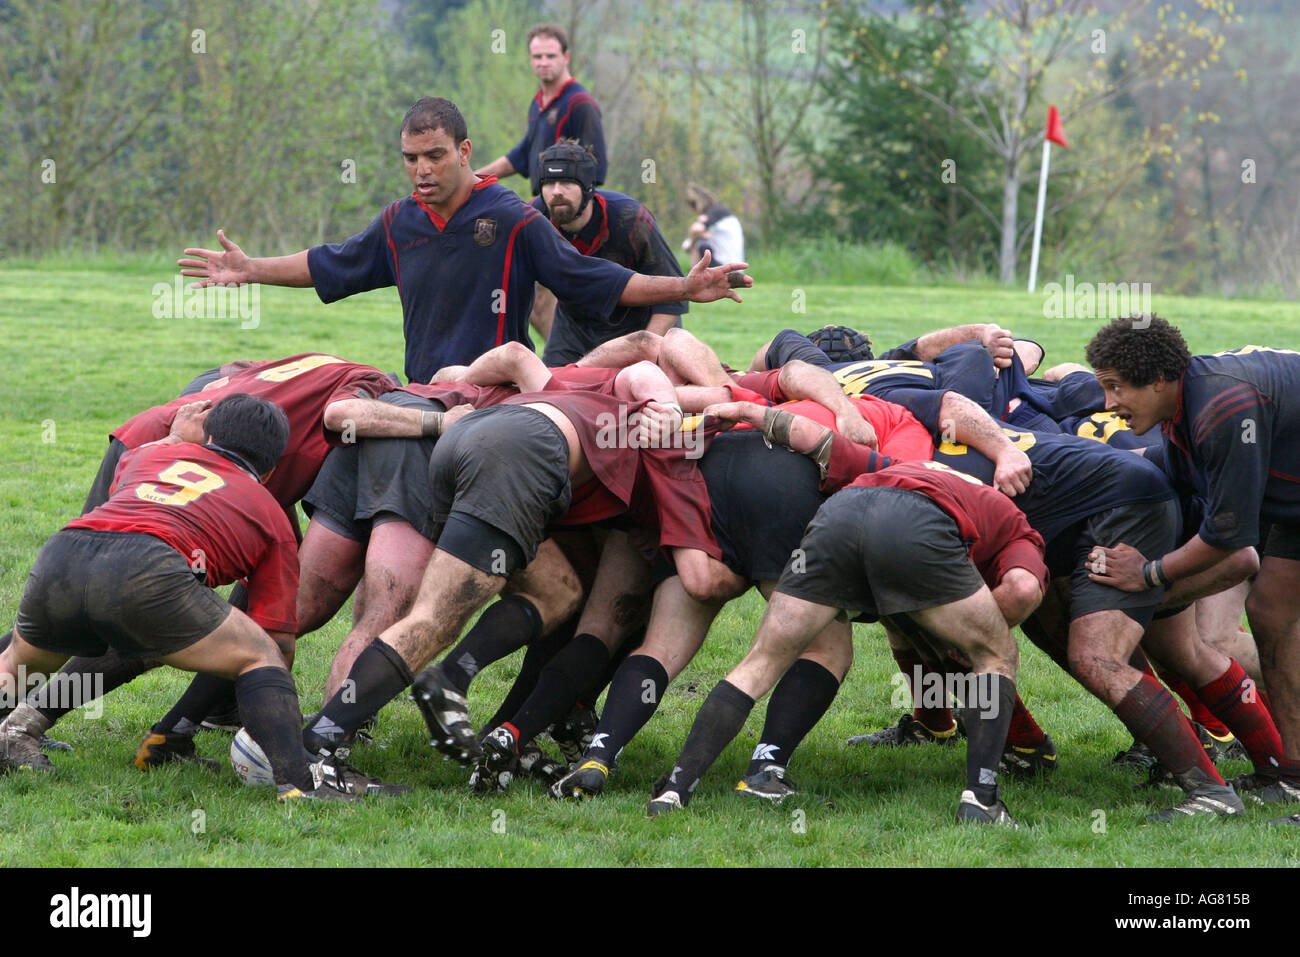 A men s rugby game in action during the scrum as players fight for the ball at a game in Oregon Stock Photo